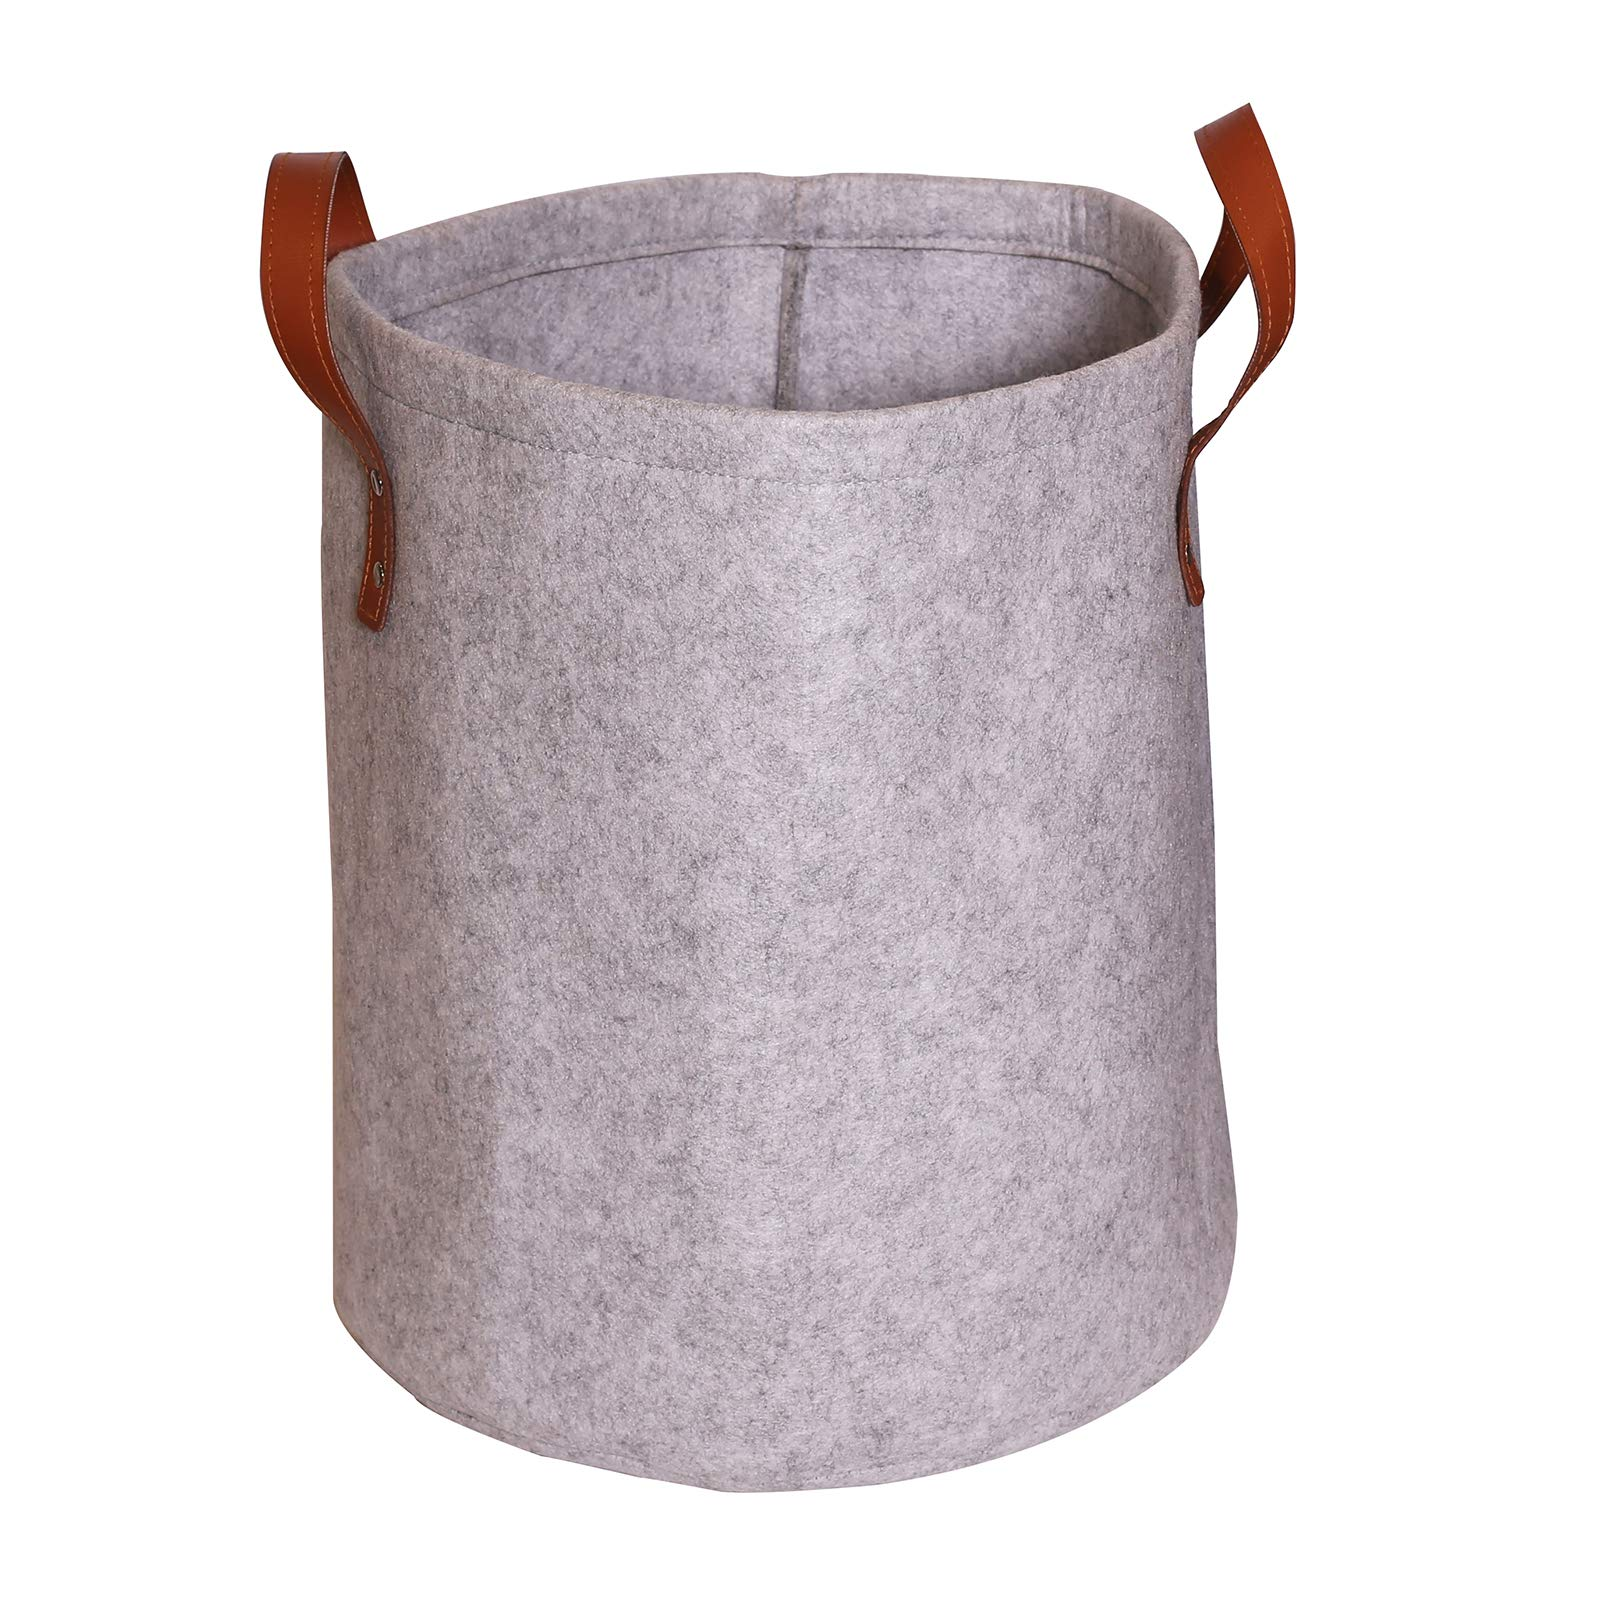 Felt Storage Basket Bins, Fabric Folding Home Containers Handmade Box Buckets with Leather Handles - Overall Size: H15''x 12''Dia. 3MM(0.12'')Thickness. Please confirm the measures before purchasing; Material: 100 percent natural felt, Easy to clean, waterproof and Tear-resistant. Foldable design makes it easy to storage; Perfect for kidsroom, bedroom, bathroom, and any room in your house, also fits on a closet shelf, bookshelf and so on. - living-room-decor, living-room, baskets-storage - 81AHzYR0y6L -